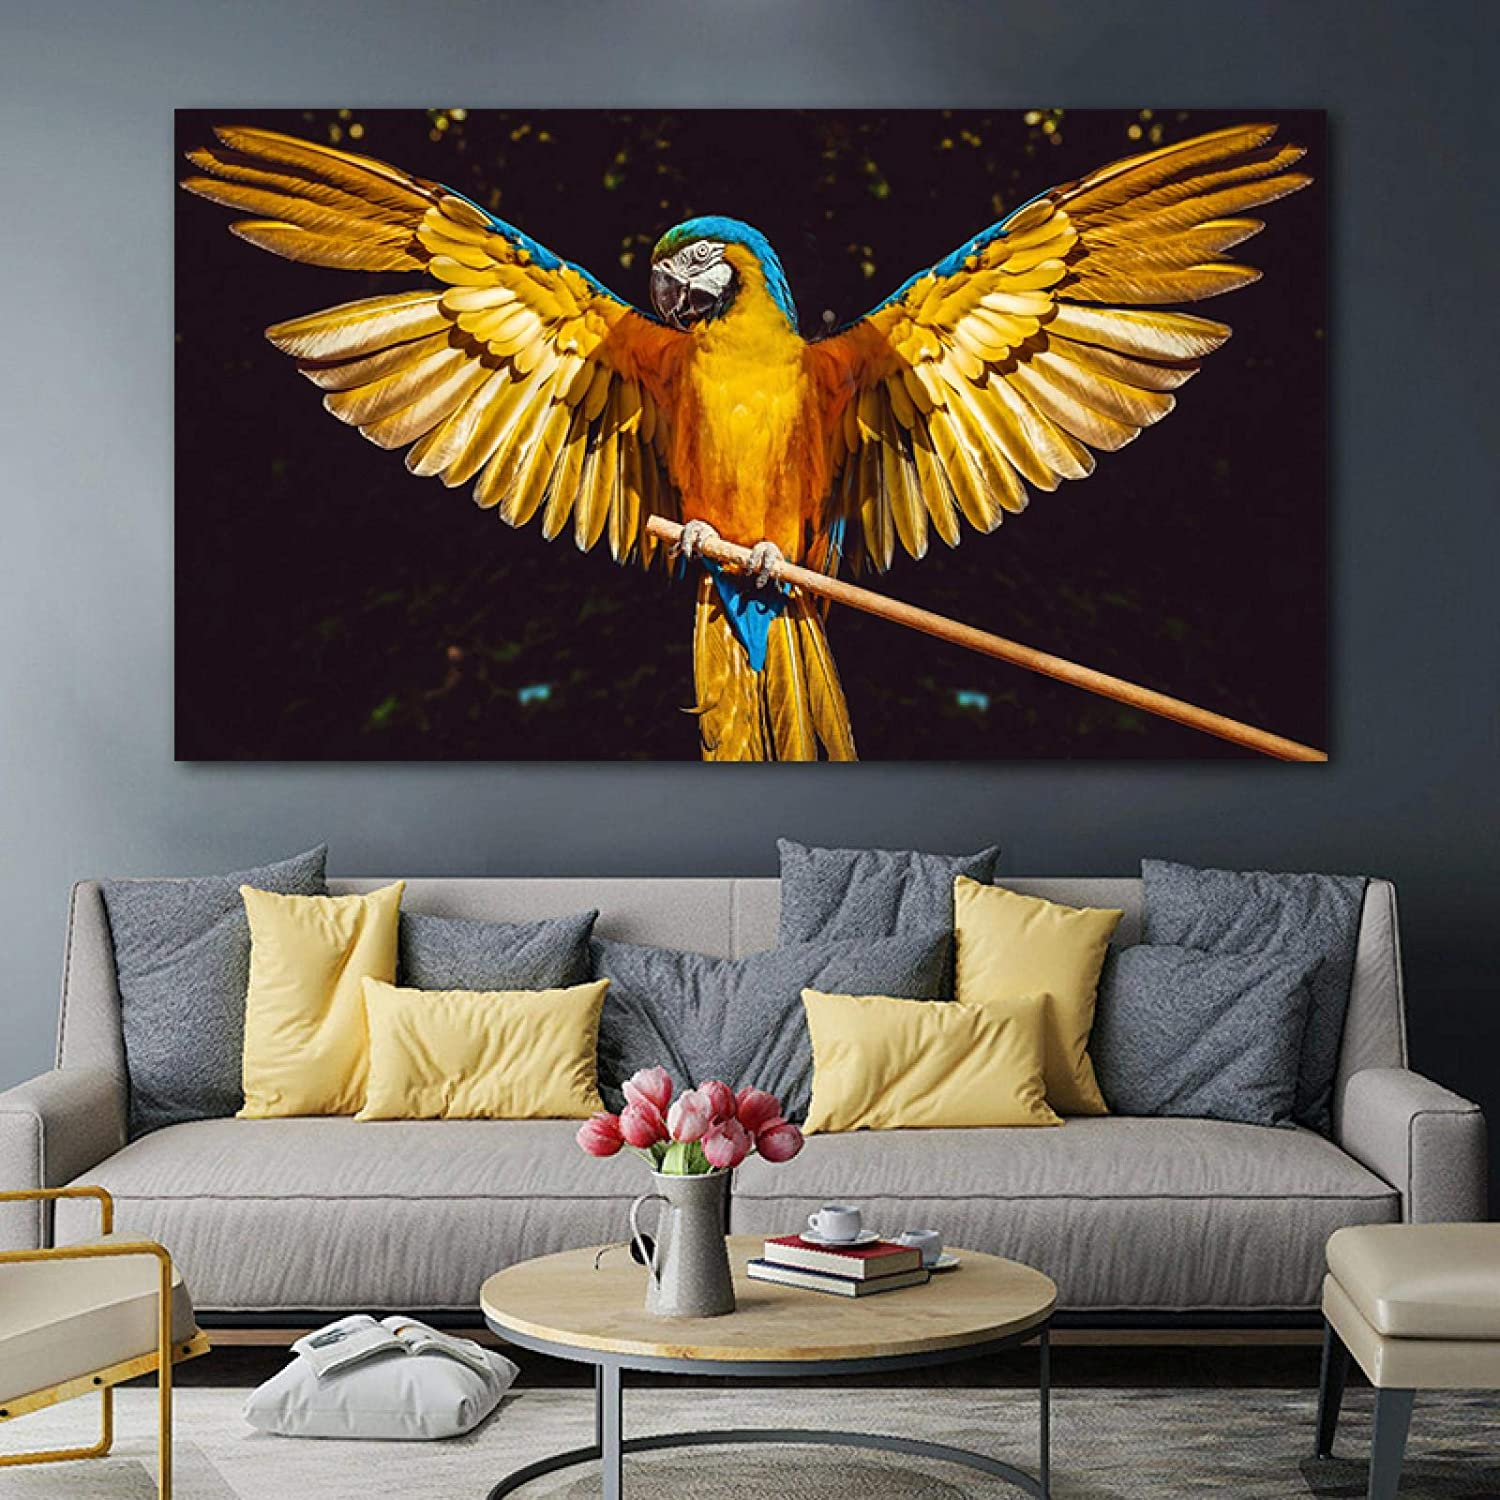 Sunsightly Print on Canvas Gold Parrot Posters Bird Direct stock discount P 25% OFF and Animal